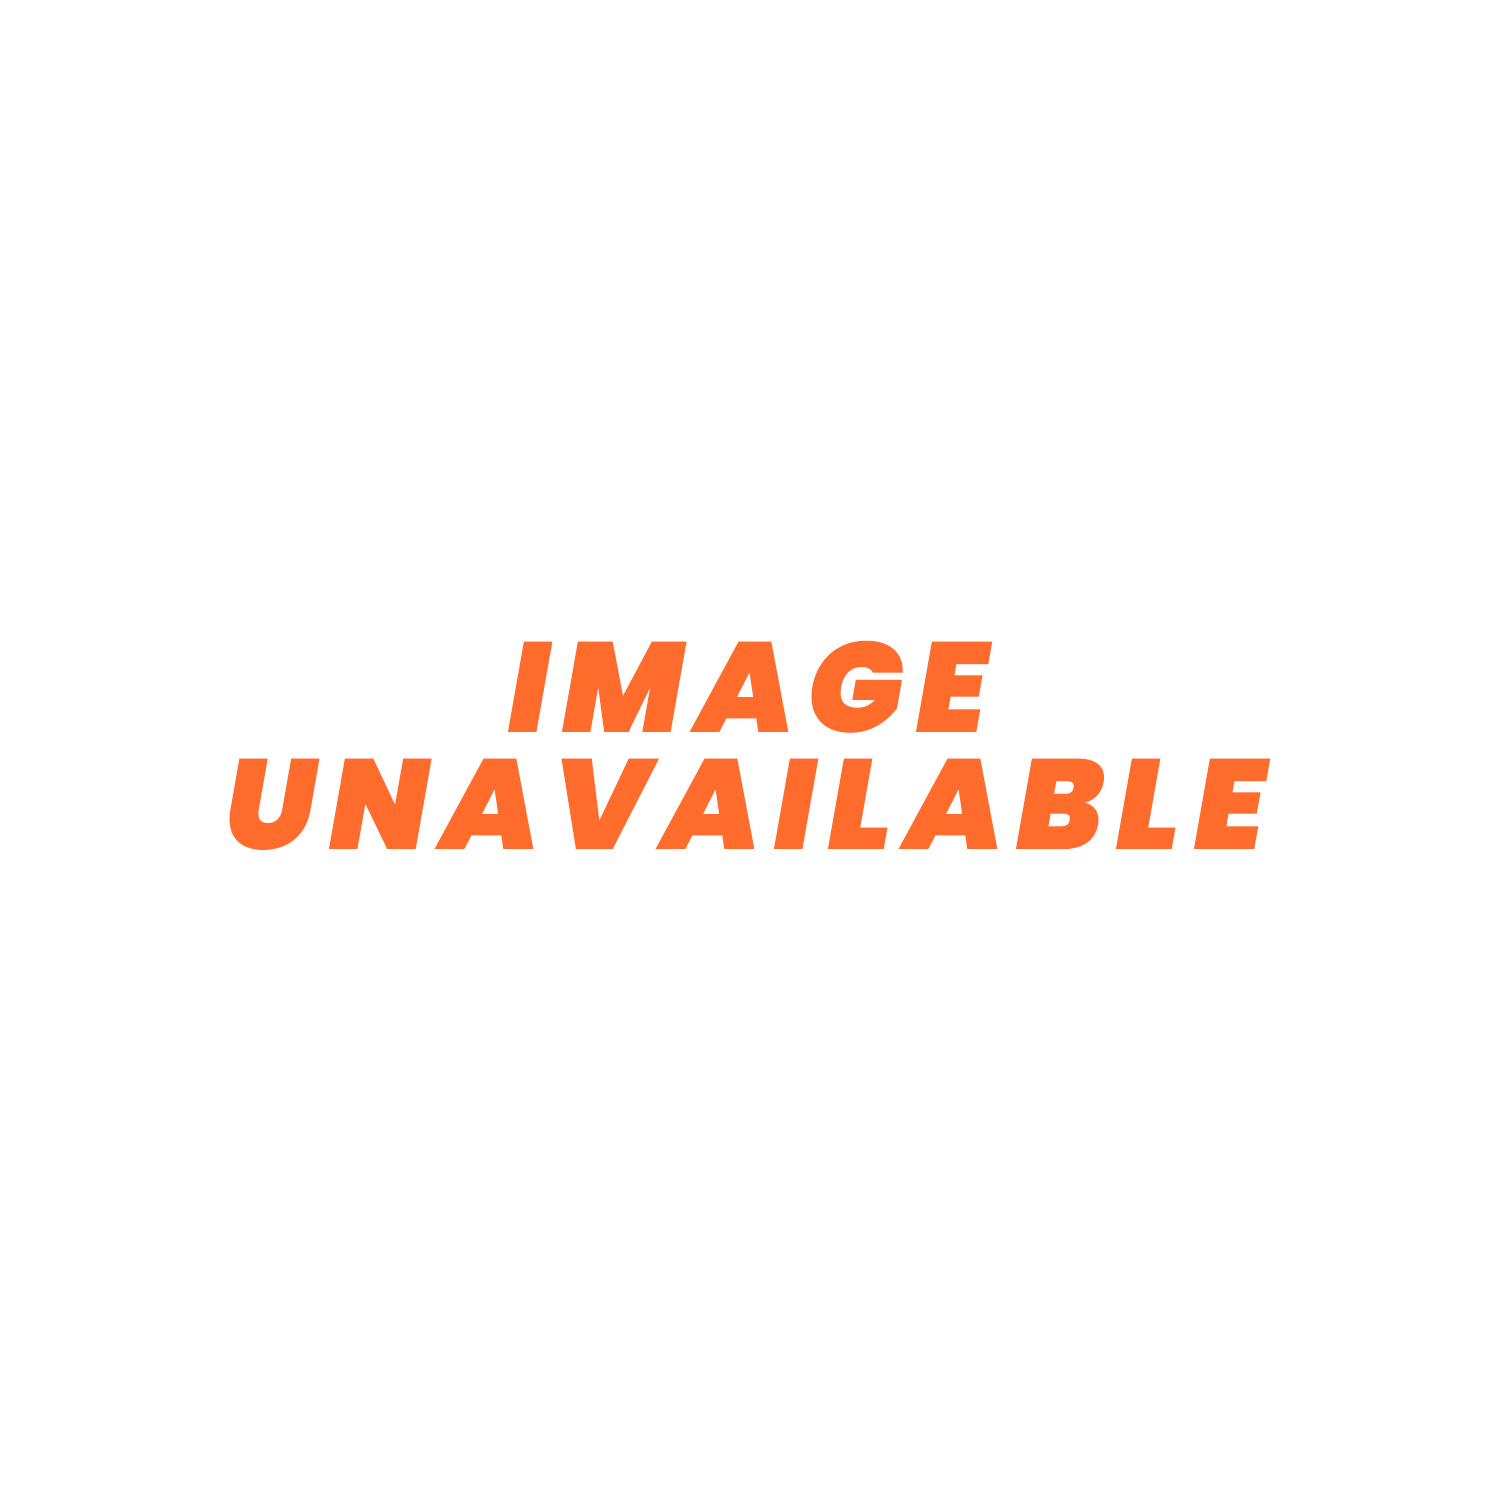 6.1kw Cubby Heater - 12v